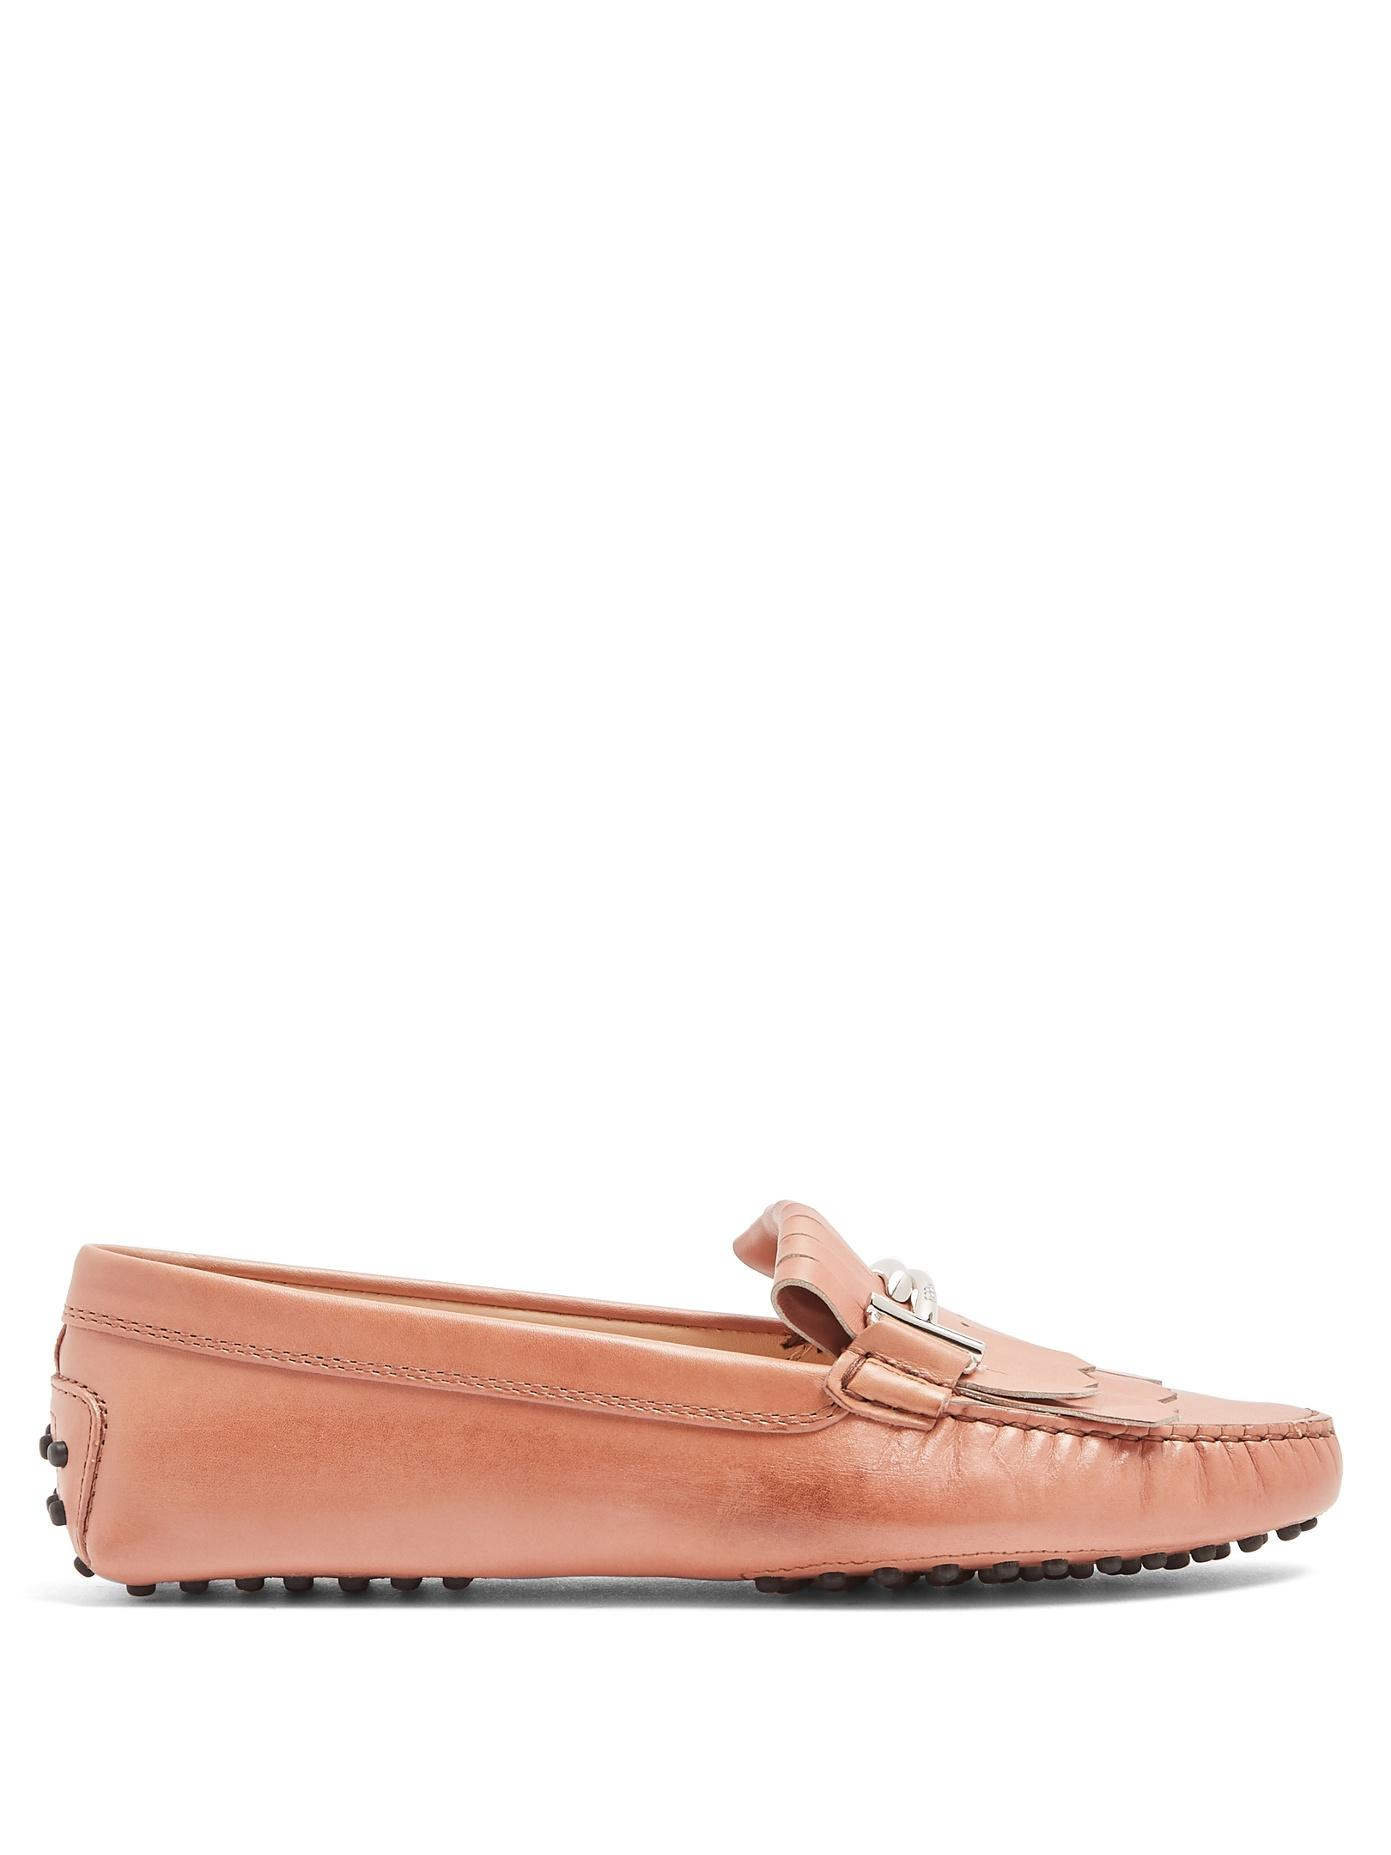 ce26298a111 Gommini T-Bar Fringed Leather Loafers in Pink